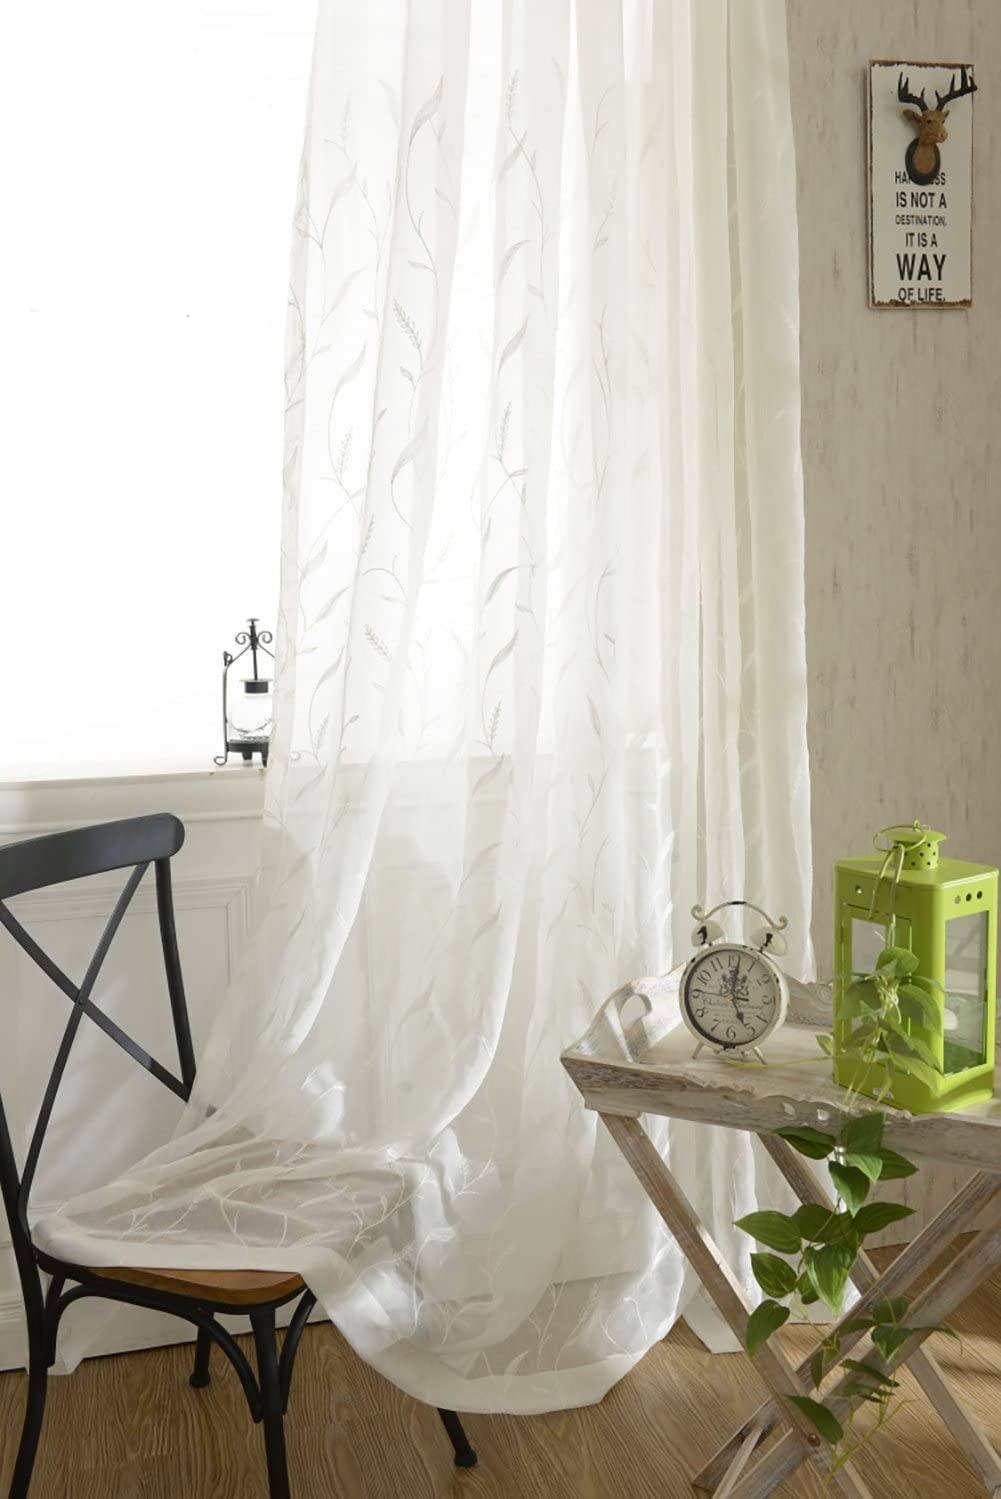 White Rod Pocket Sheer Curtains 96 inches Length Embroidered Window Curtain Sheer Voile Panels for Living Room & Bedroom, 60x96, Two Panels